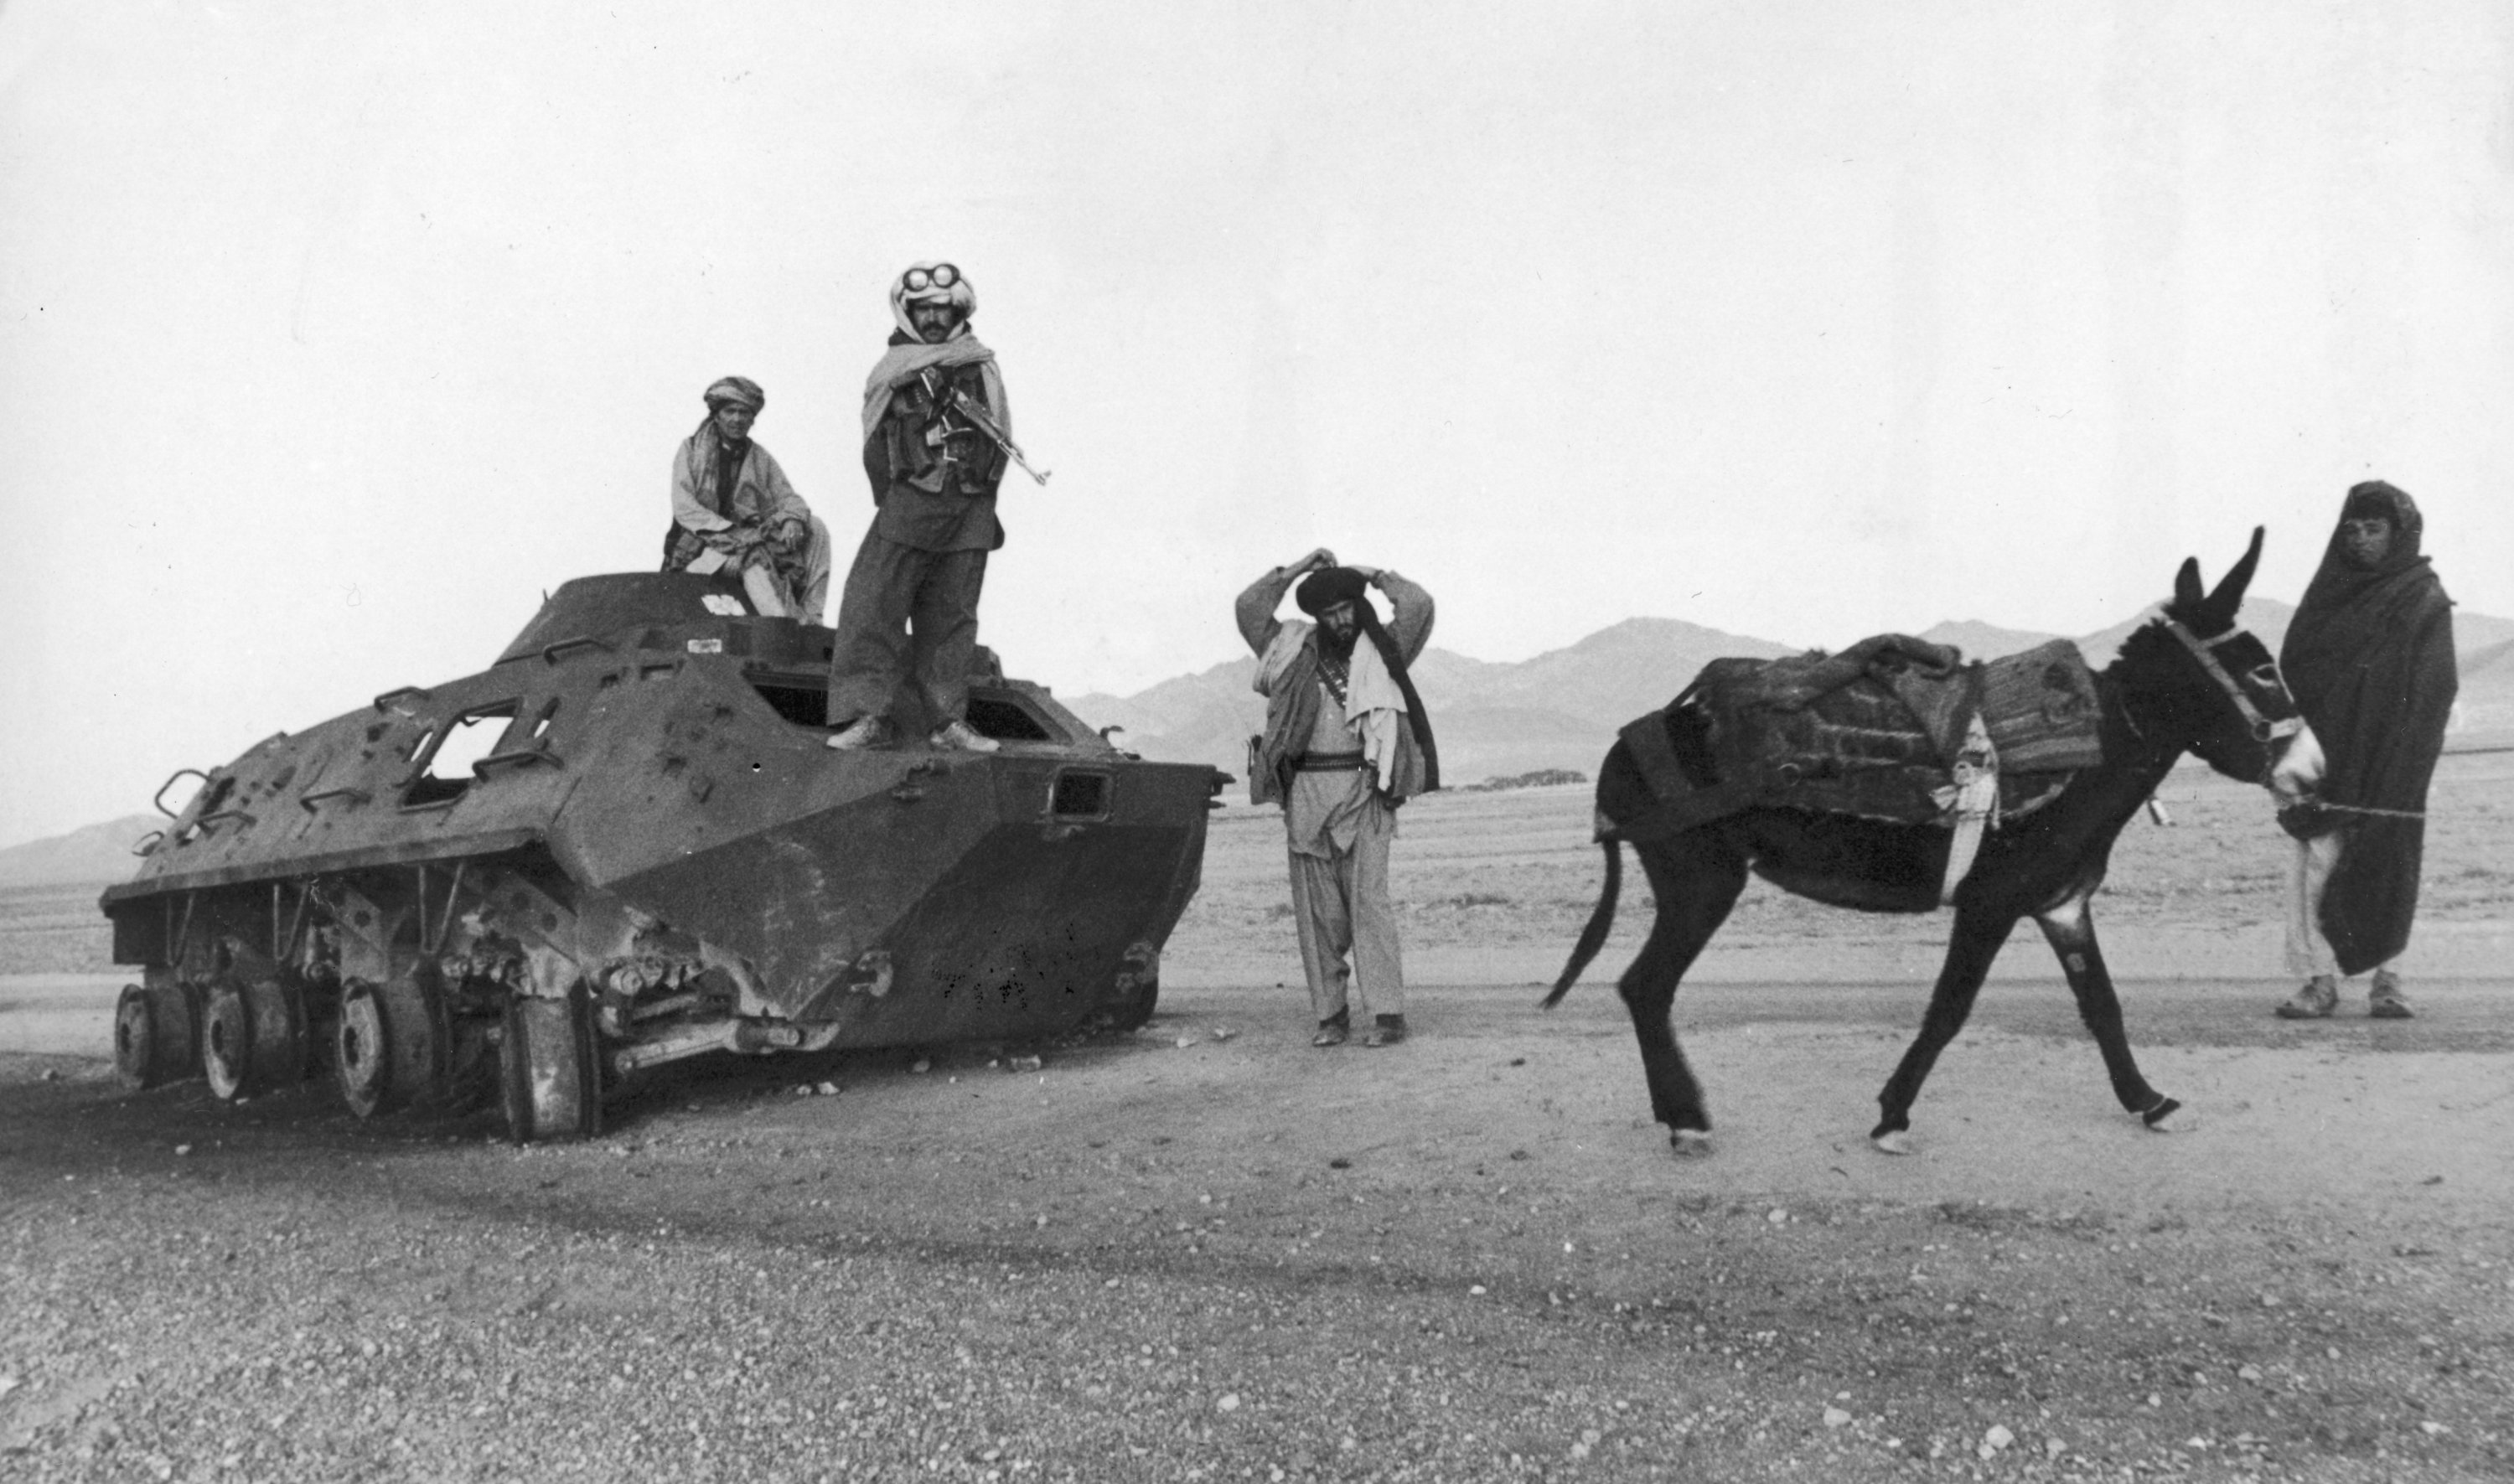 A group of Afghan soldiers with a Soviet Army tank stop in the desert with a donkey during the Afghan civil war, 1979. (Photo by Getty Images)